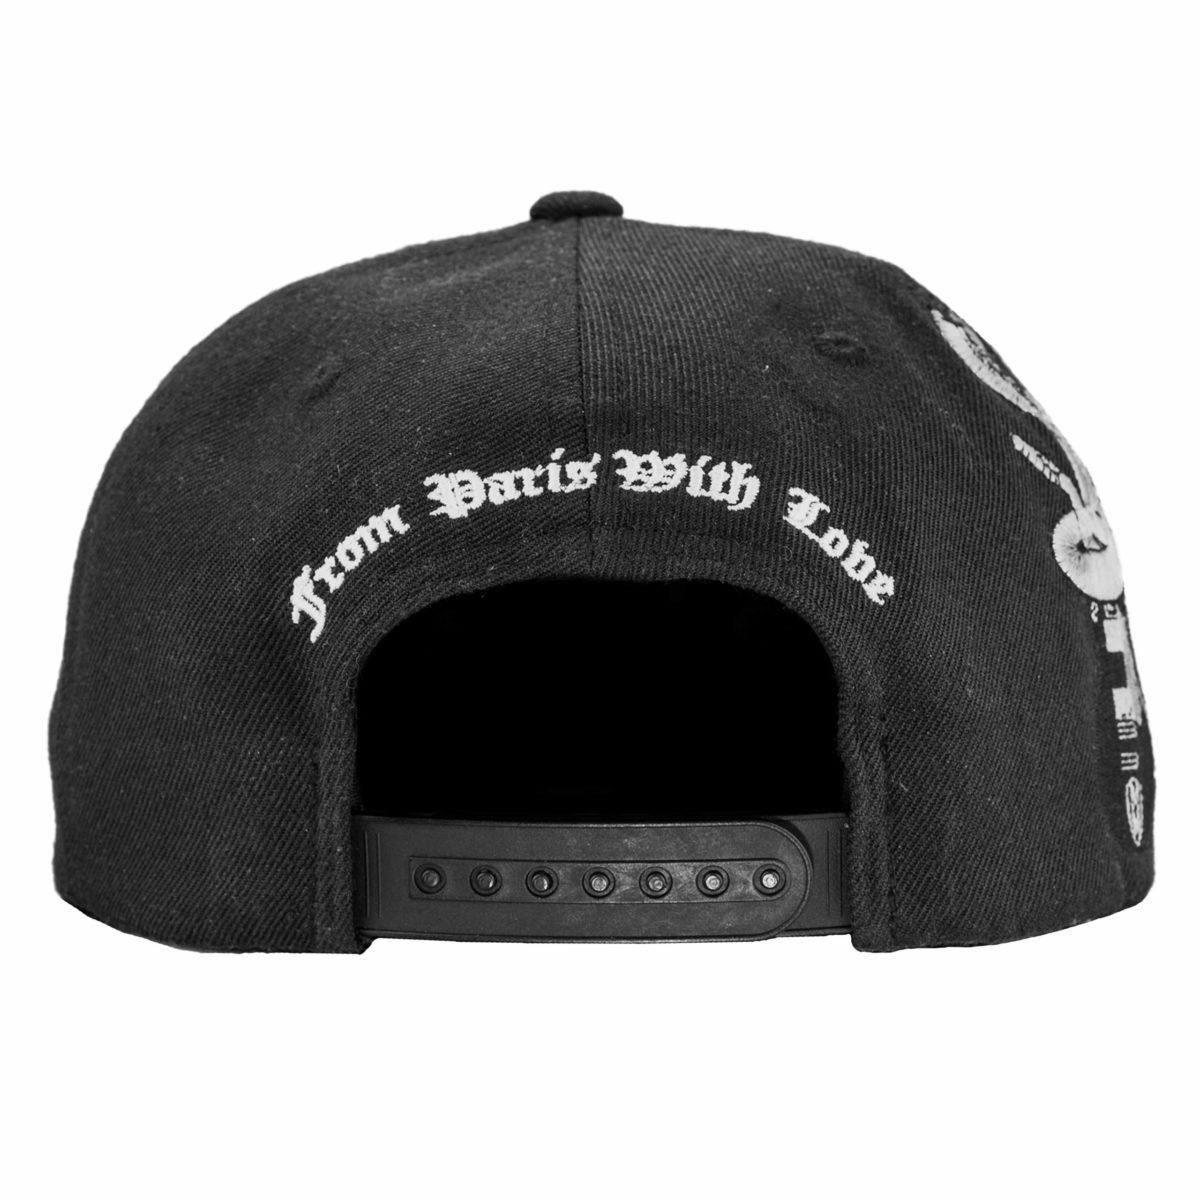 Luxury_Snapback_Rockstar_back